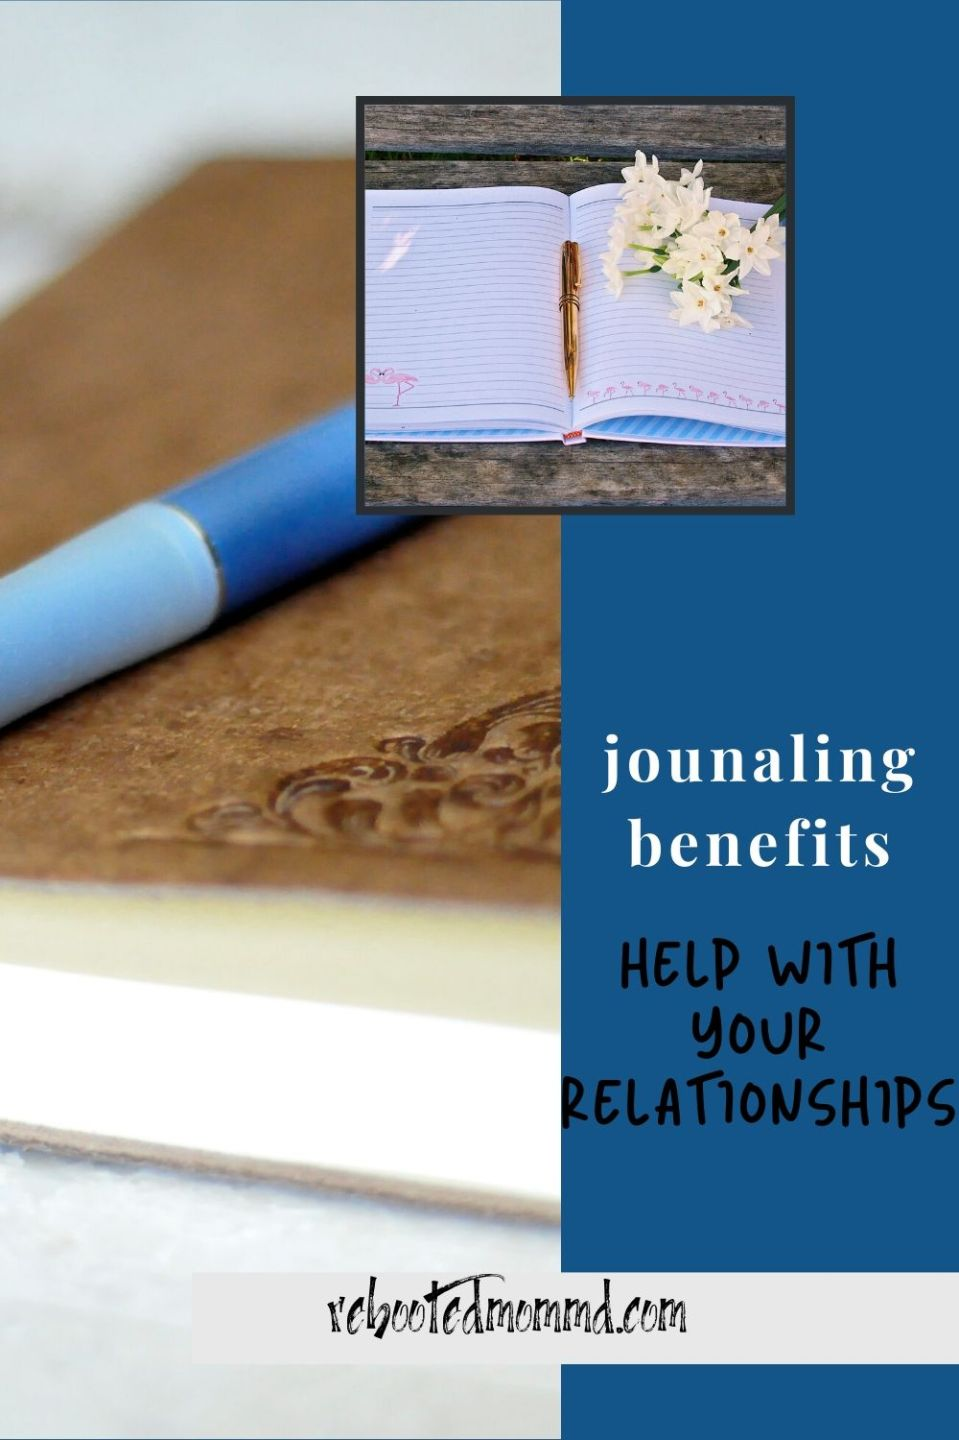 The Benefits of Journaling on Your Relationships